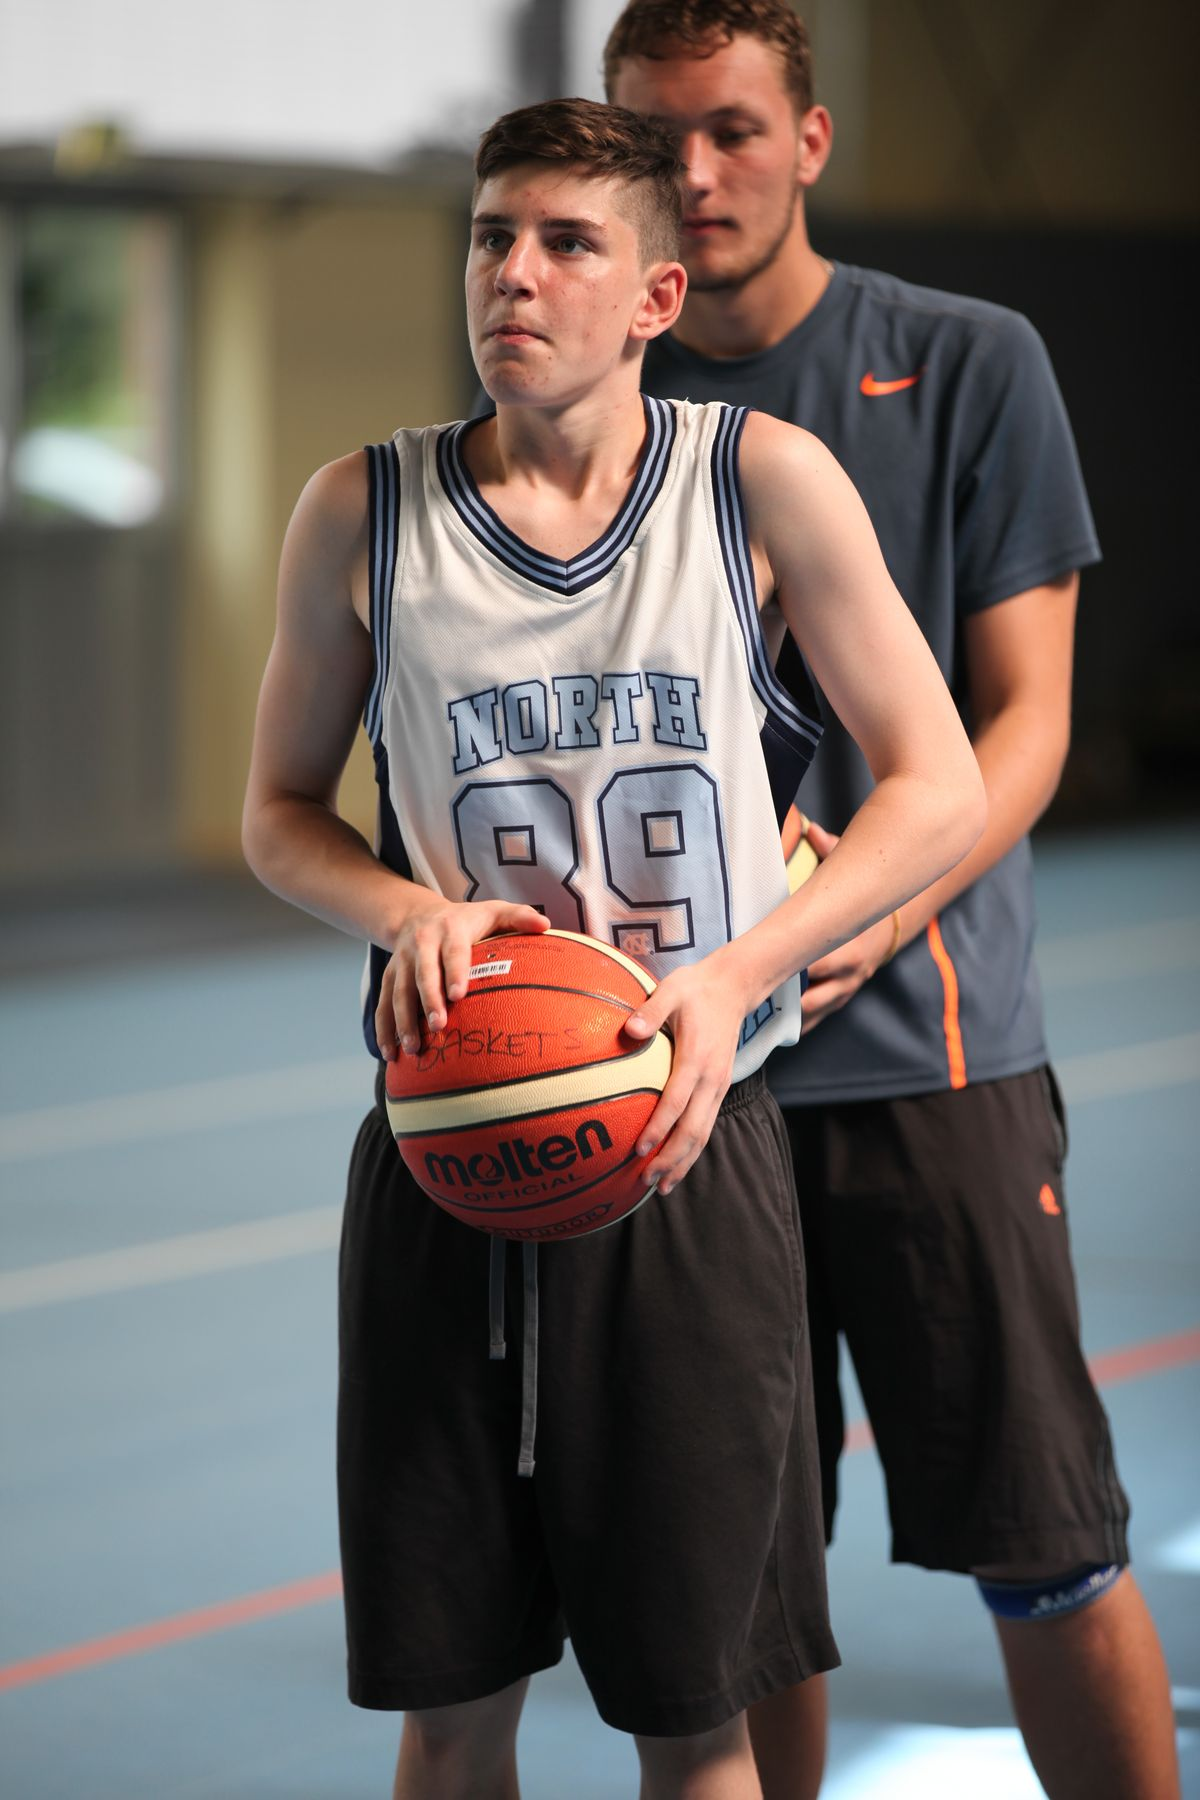 Sommer_BBall-Camp_2014_Tag 3 (7)